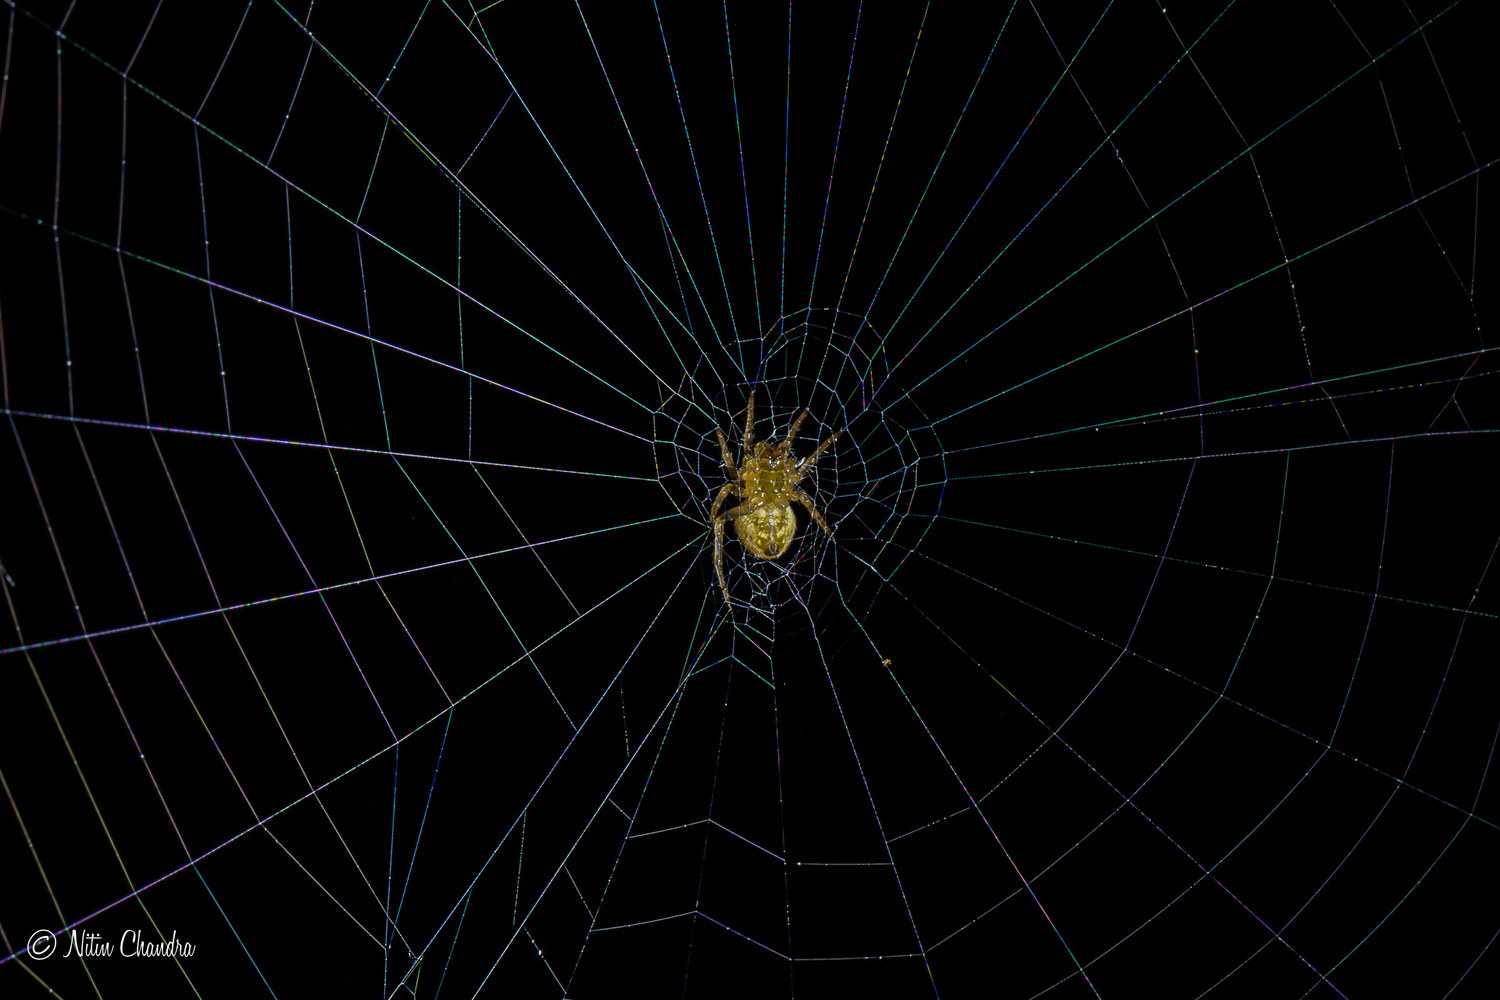 Teeny spider...Caught in a web :) by Nitin Chandra